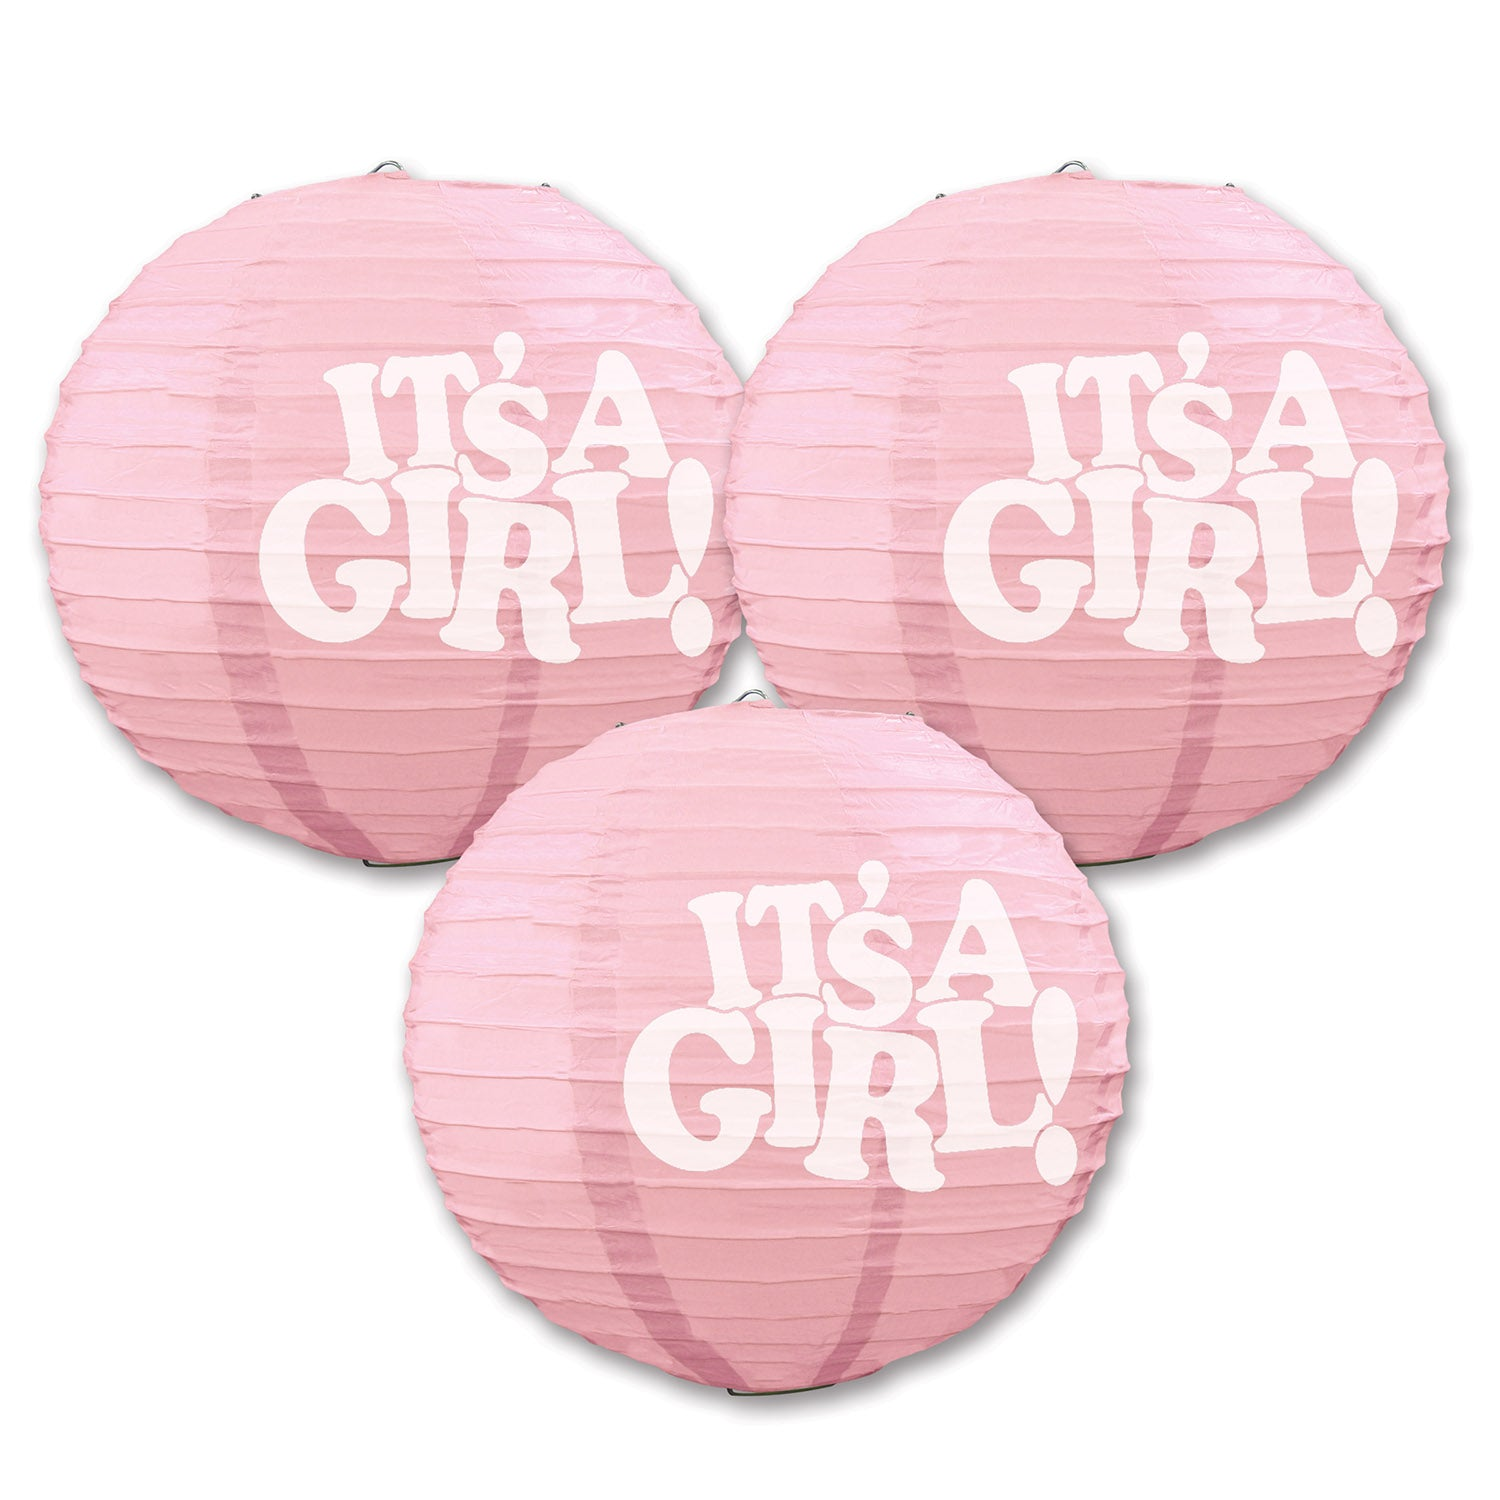 It's A Girl! Paper Lanterns (3/Pkg) by Beistle - Baby Shower Theme Decorations